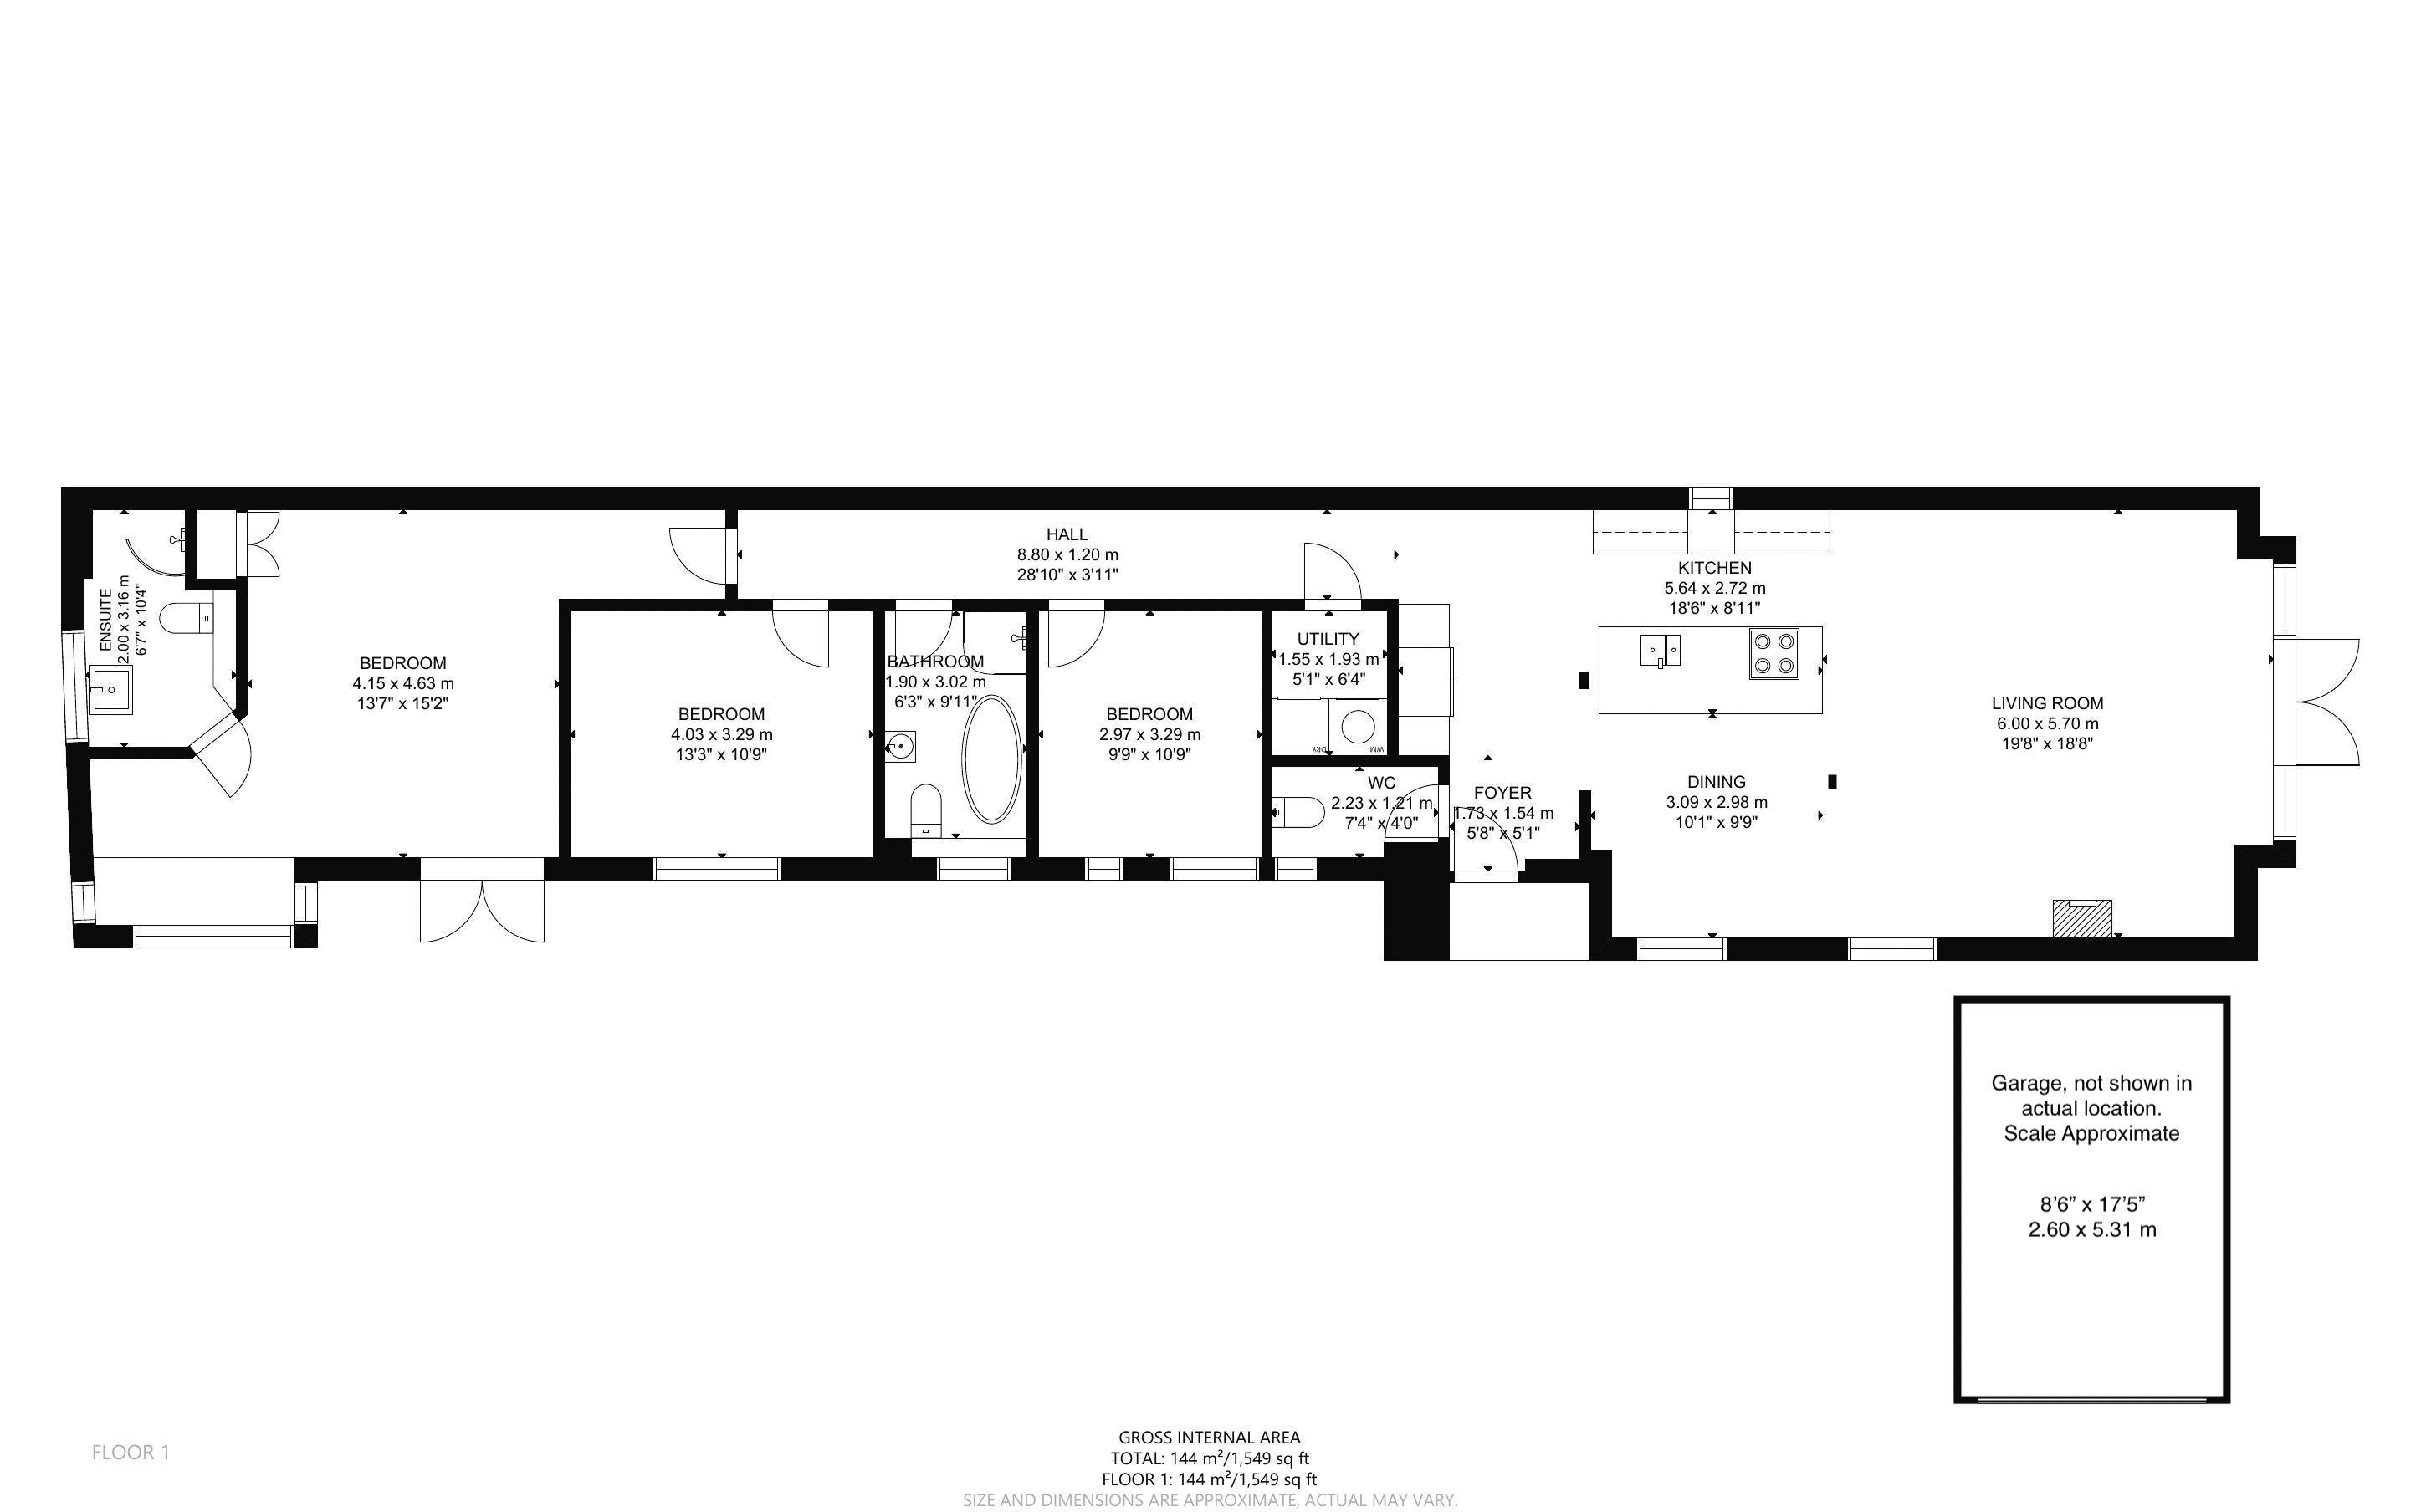 3 bed bungalow for sale, Chichester - Property Floorplan